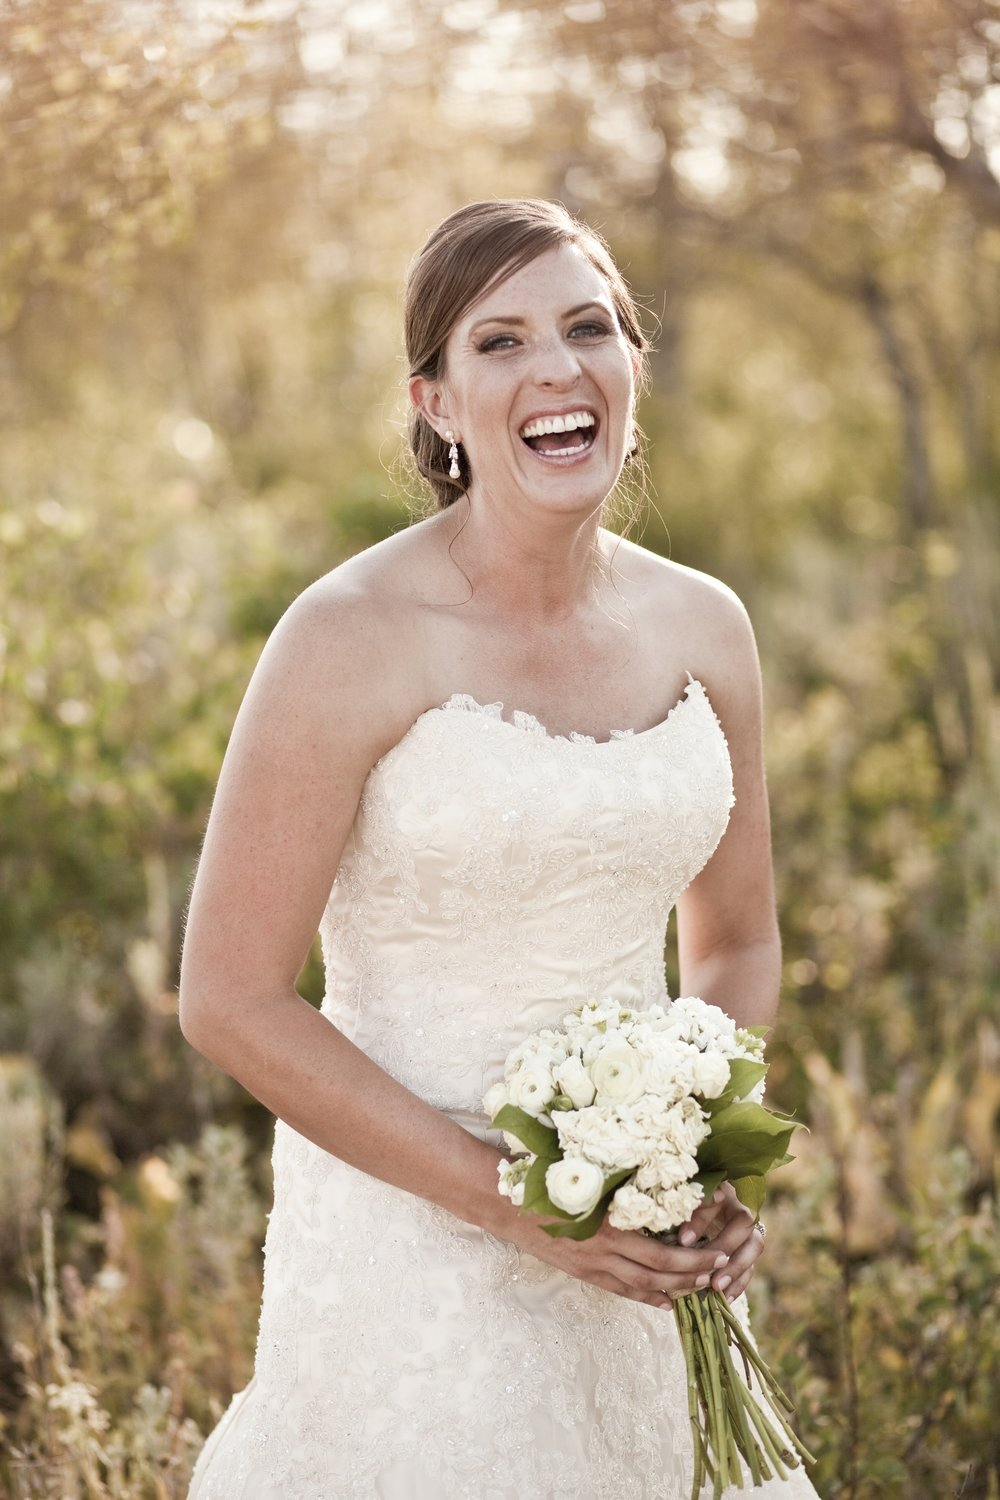 Duer Jackson Hole Wedding 2012_1443.JPG